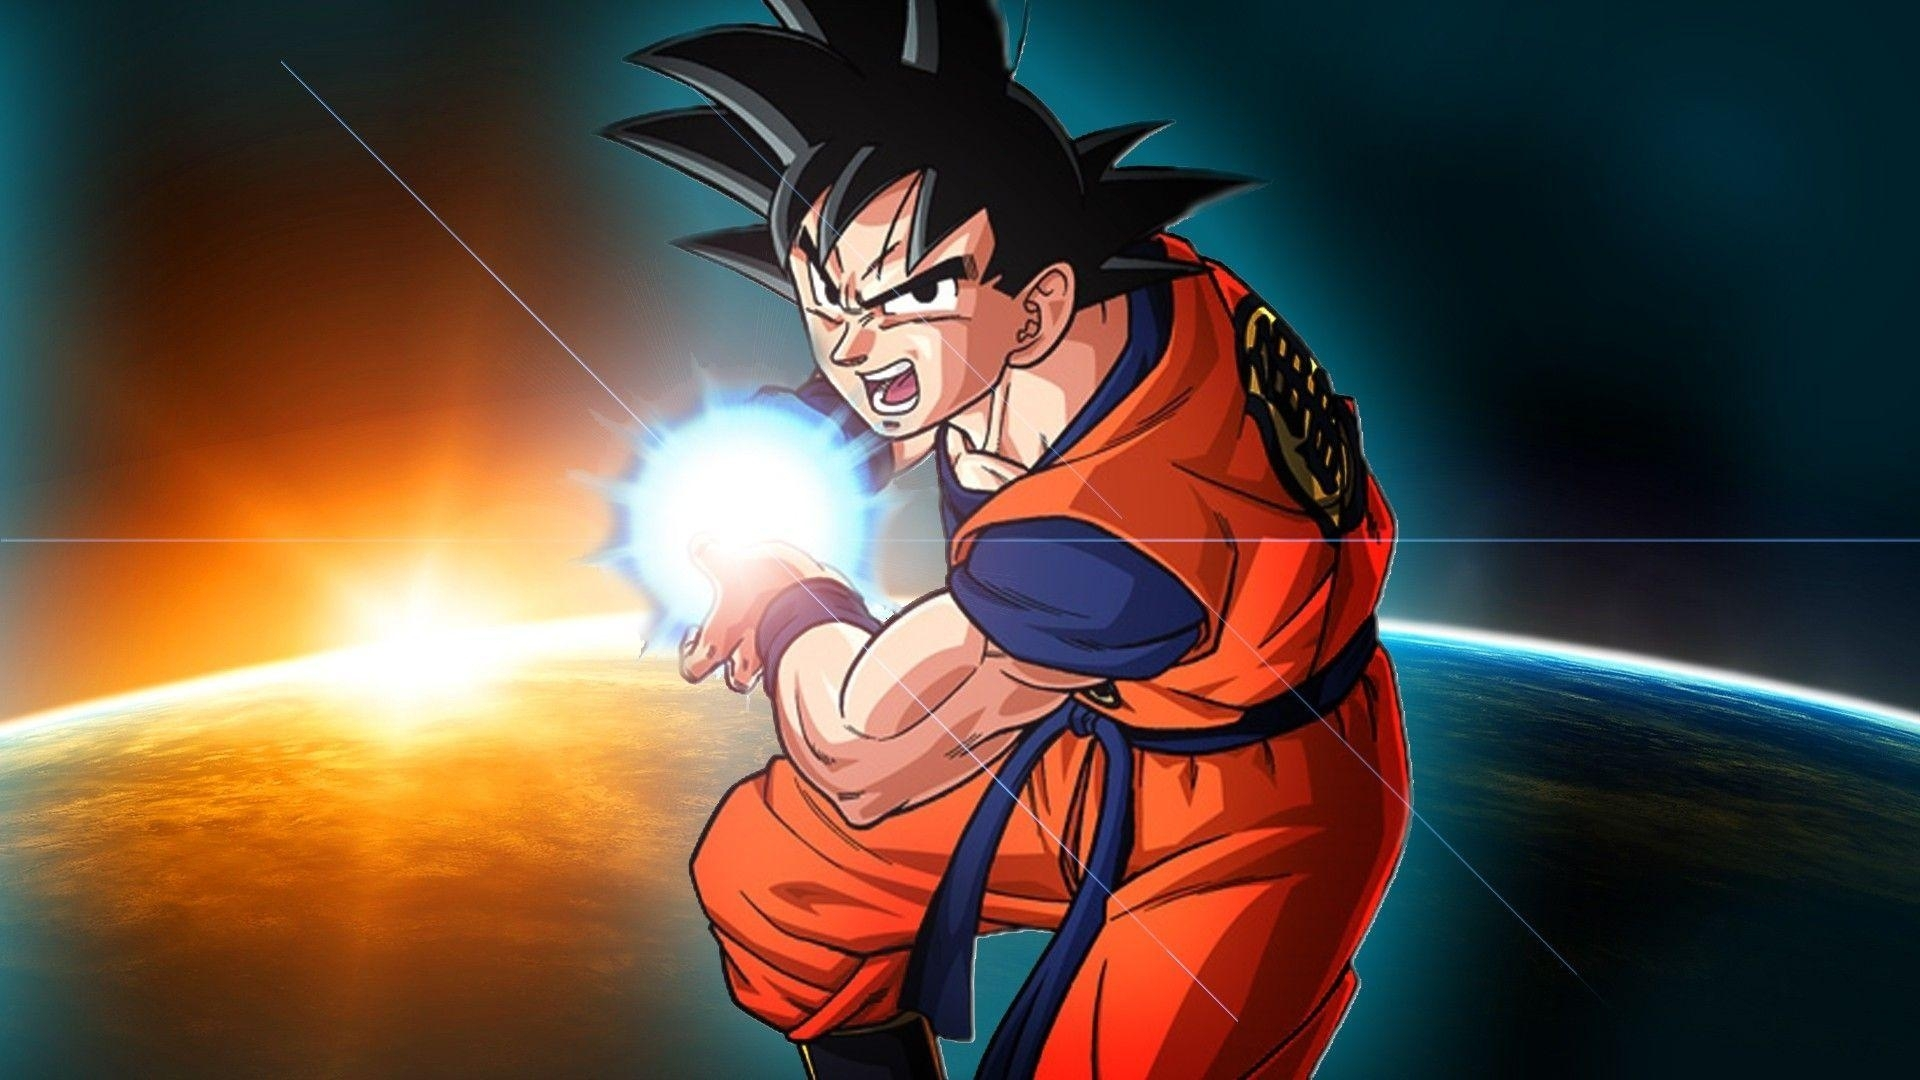 10 Most Popular Dragon Ball Z Desktop Wallpaper Hd FULL HD 1080p For PC Background